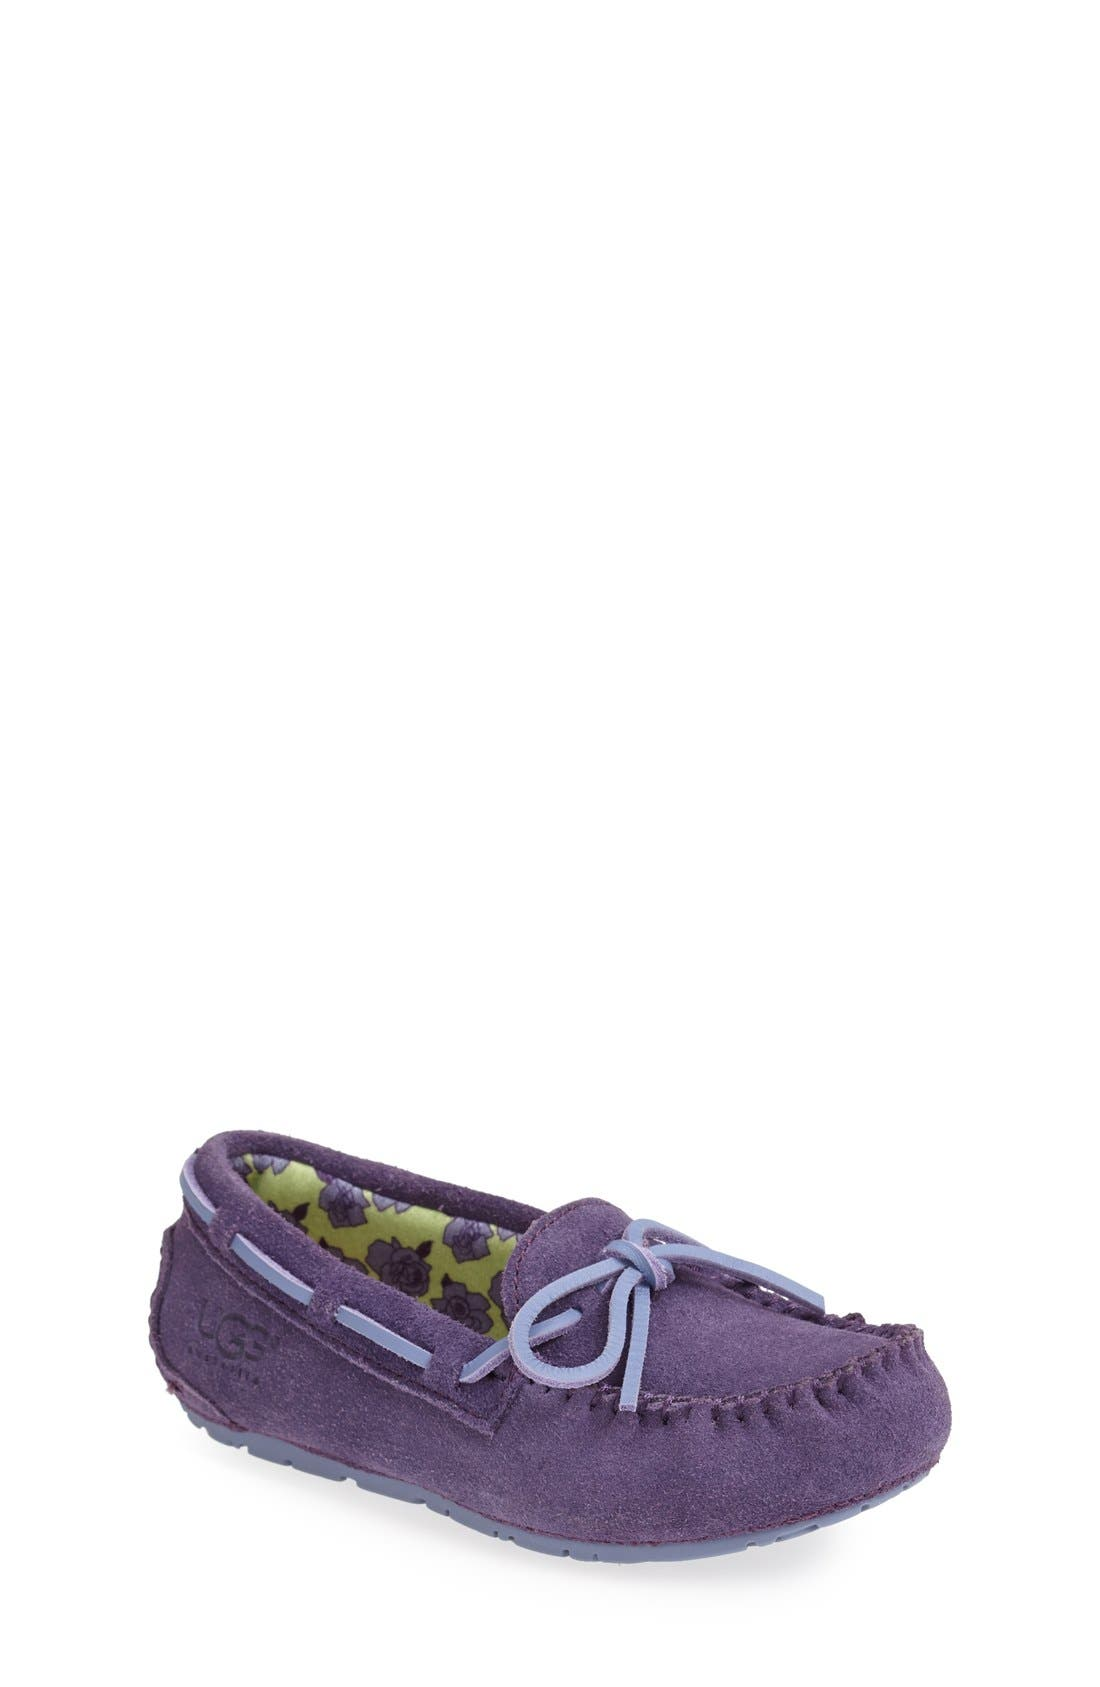 Alternate Image 1 Selected - UGG® 'Ryder Rose' Slipper (Toddler, Little Kid & Big Kid)